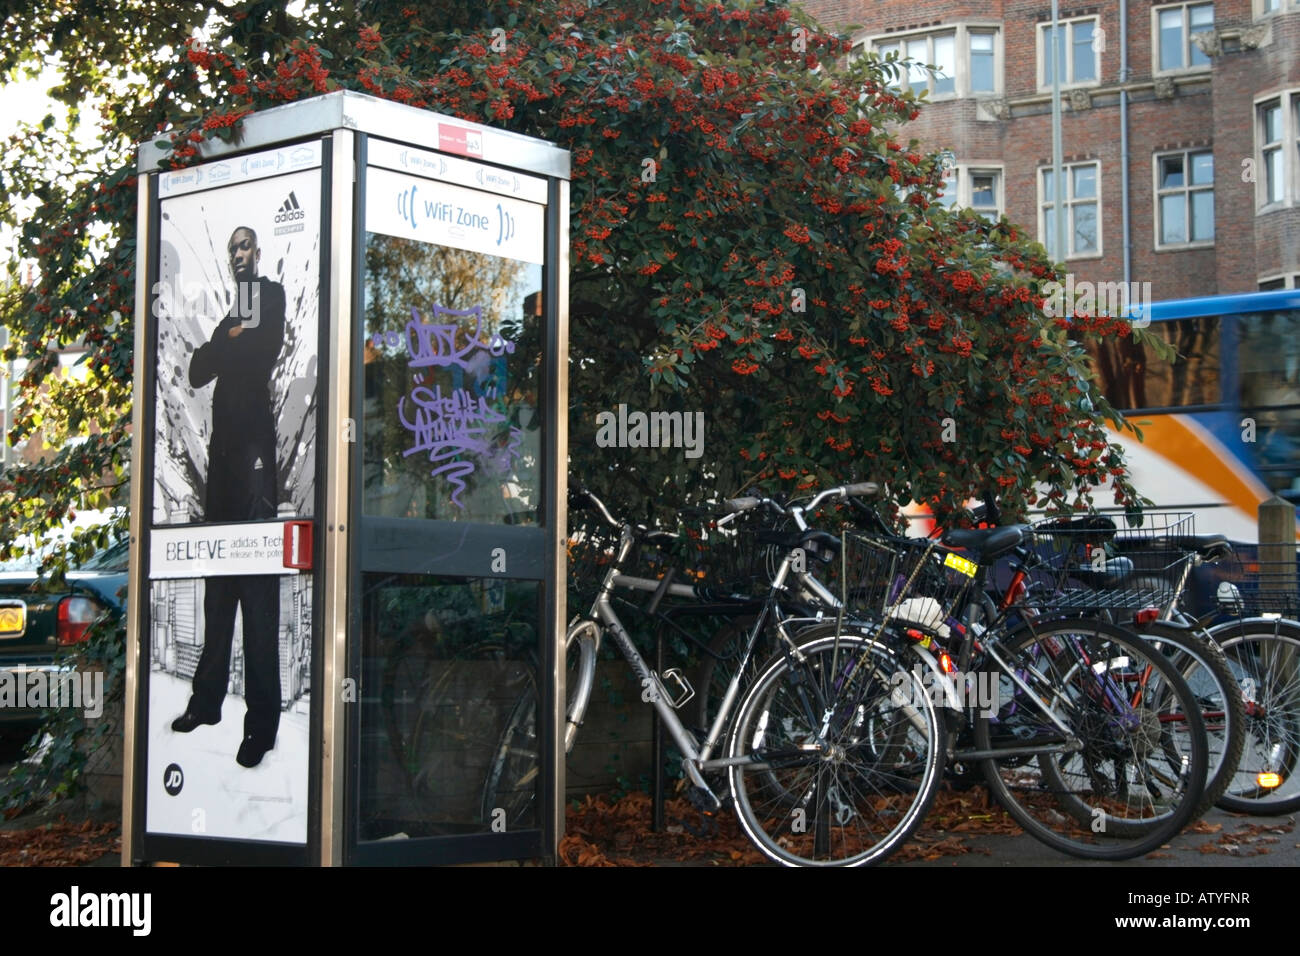 Public phone booth and bicycles in Bevington Road, Oxford - Stock Image